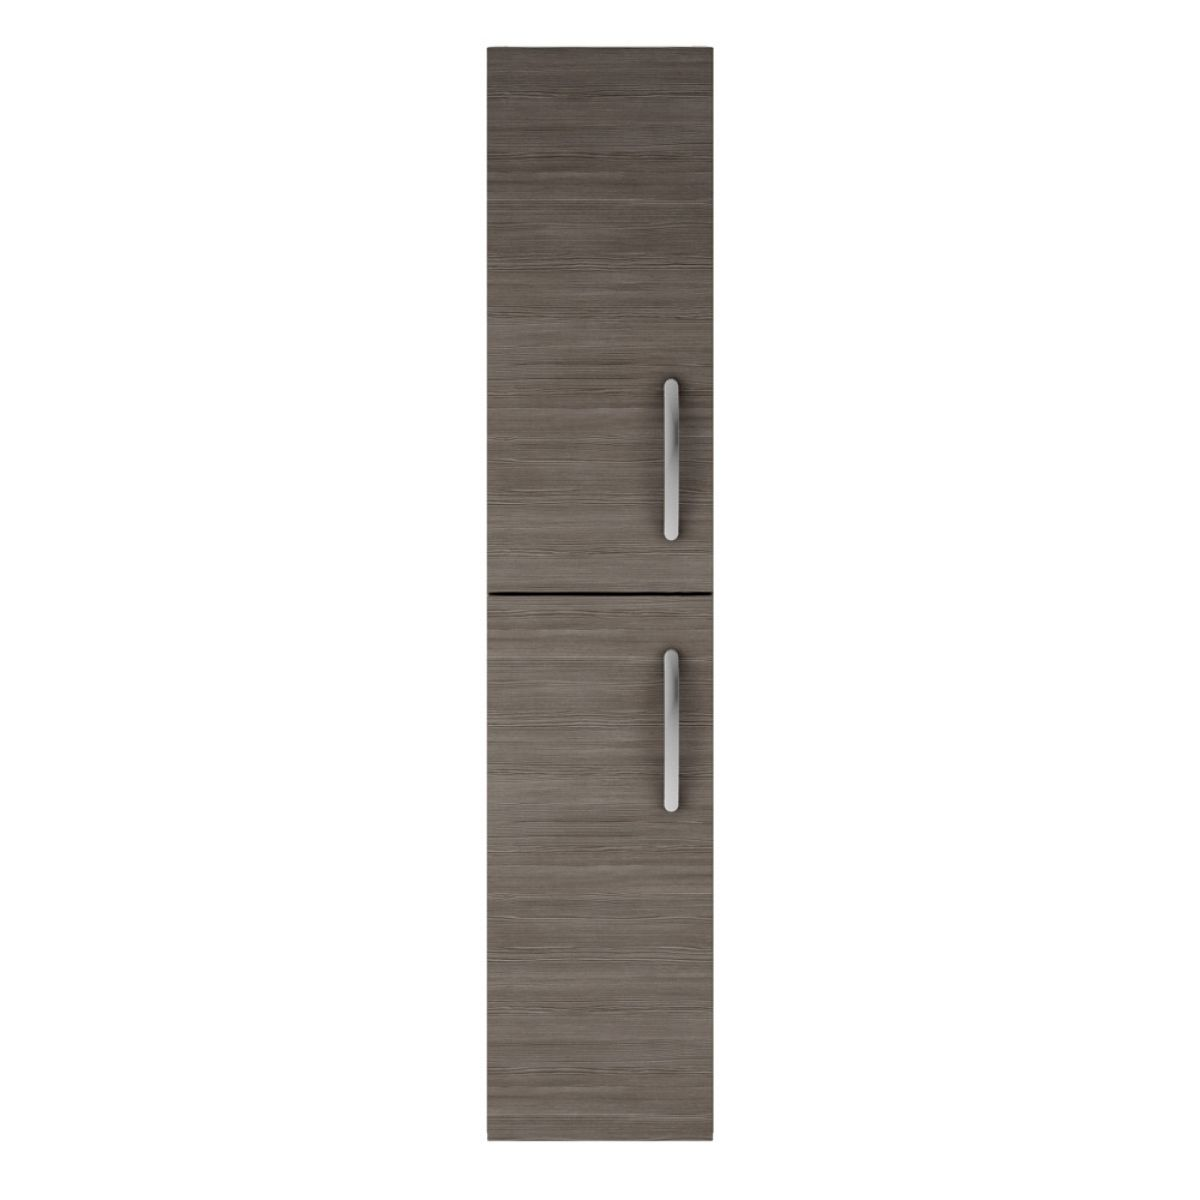 Premier Athena Grey Avola Double Door Tall Unit 300mm